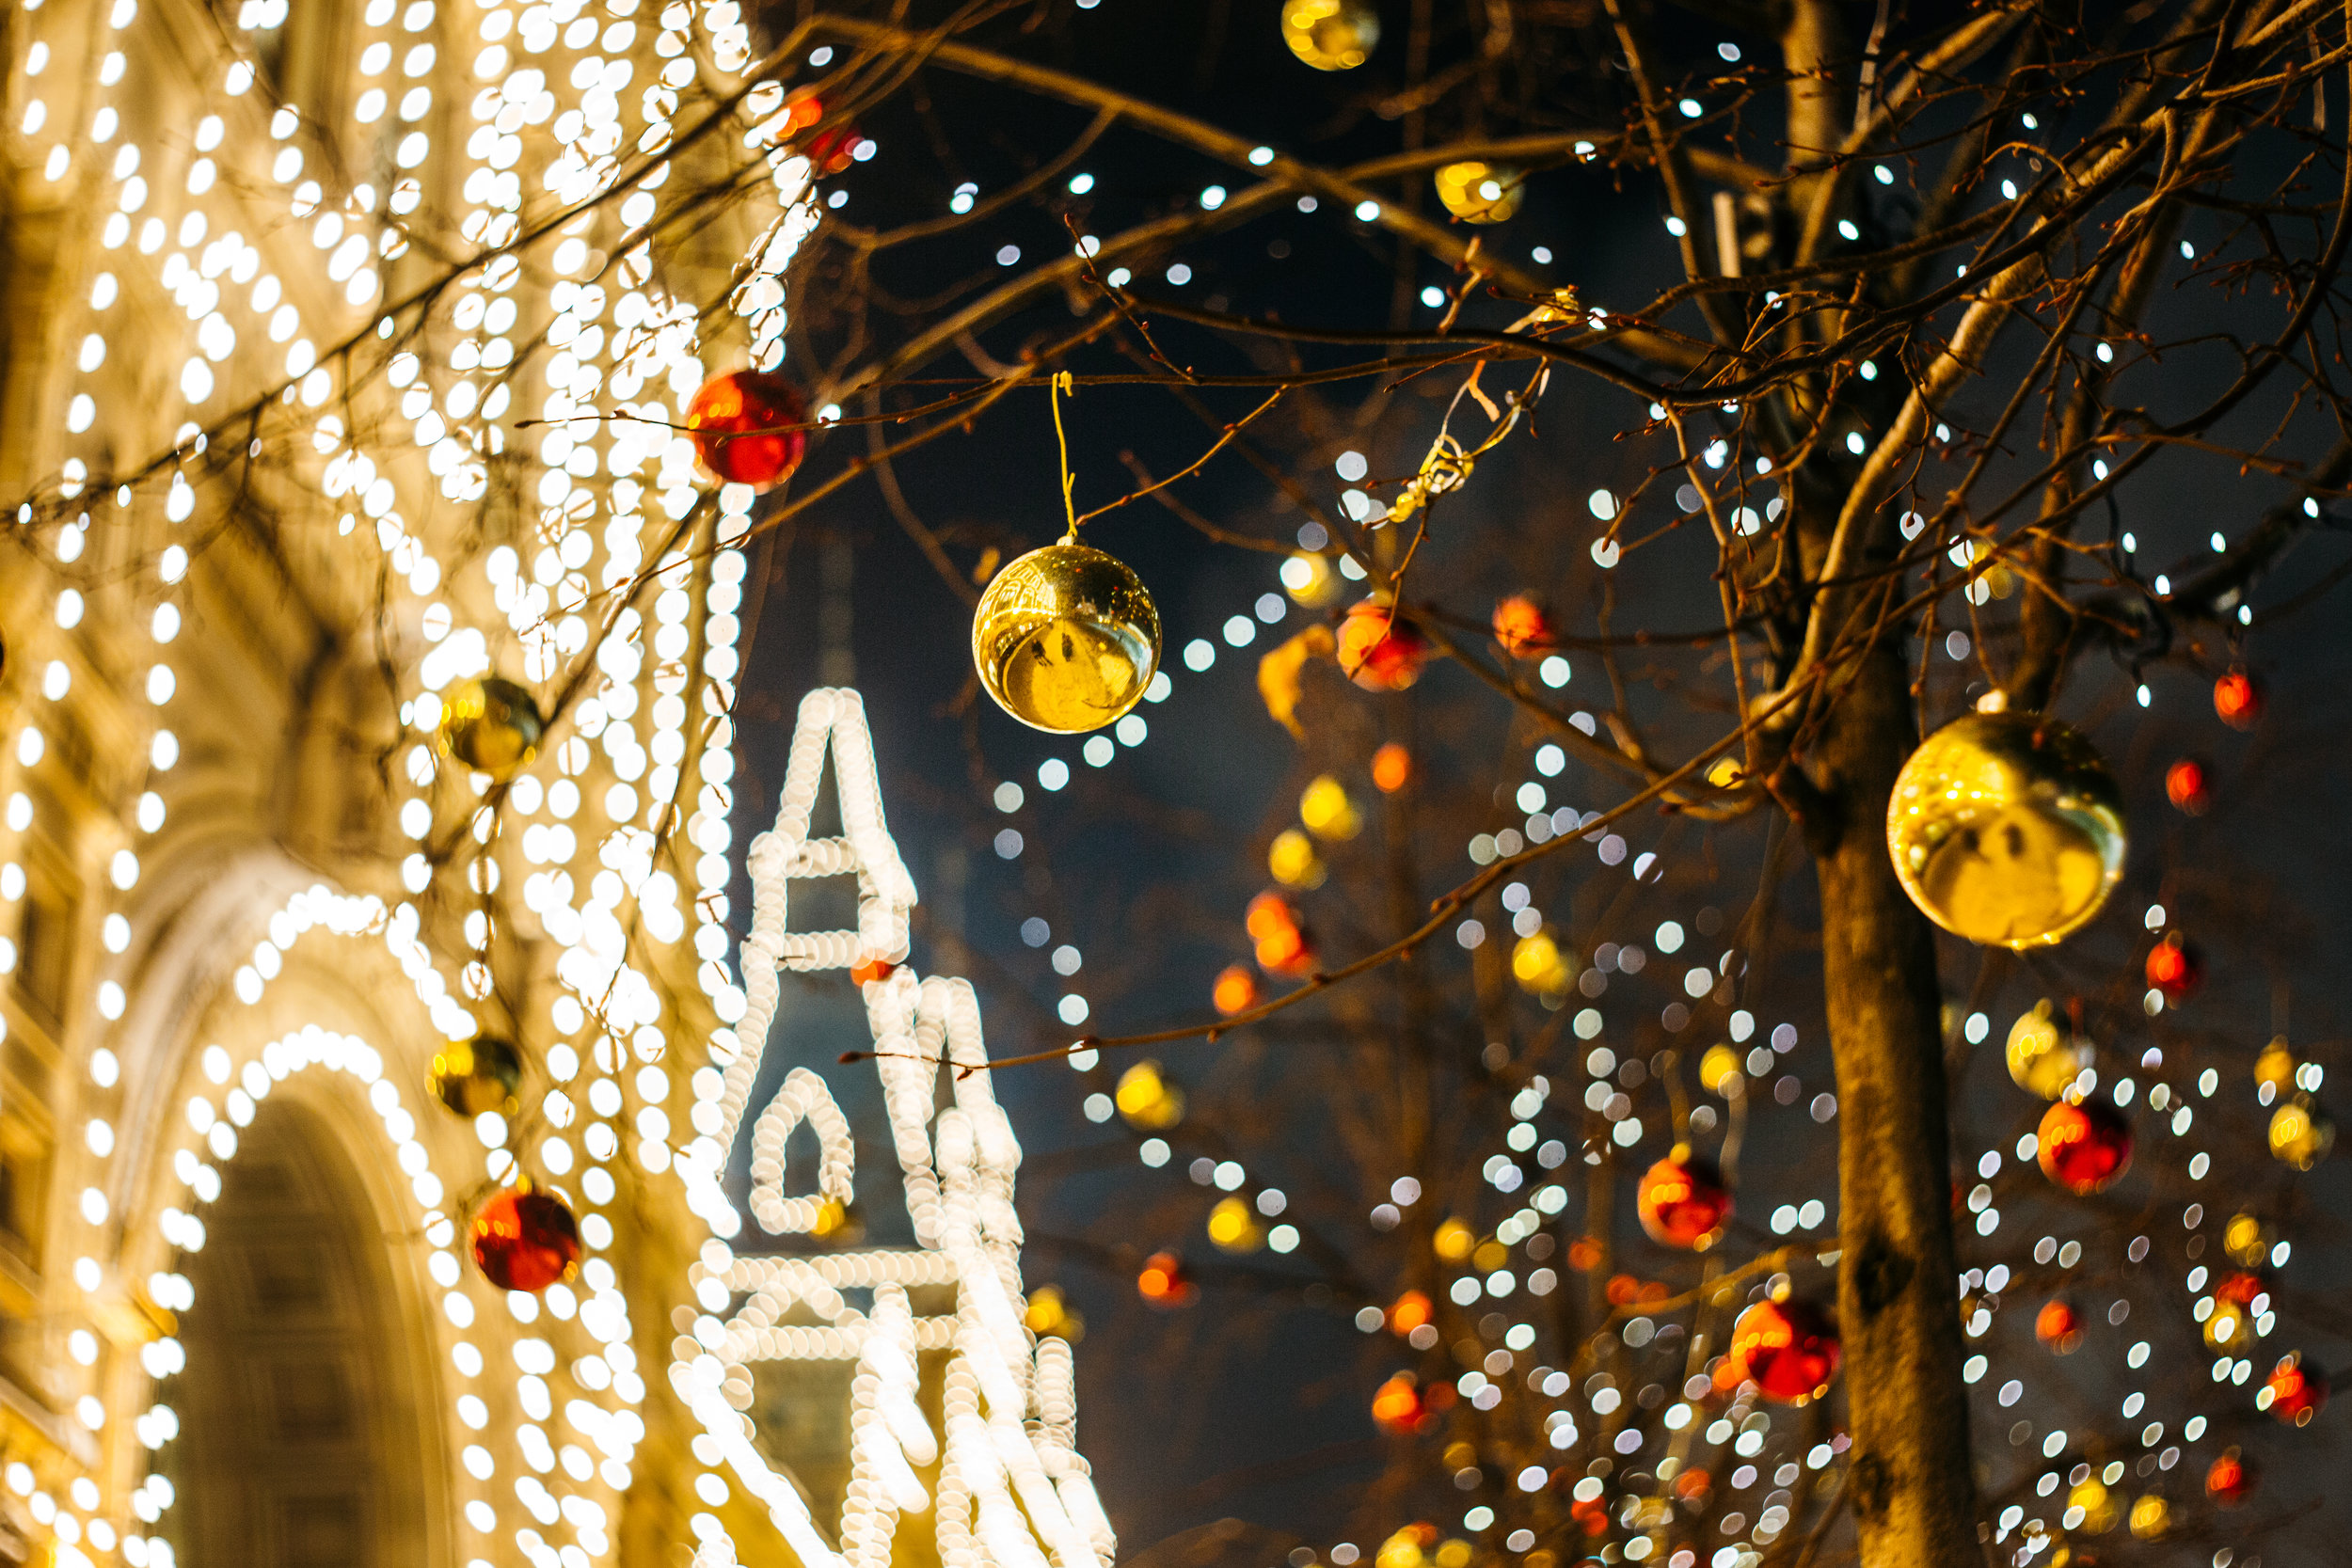 write a good Christmas sermon Backstory Preaching church in lights with ornaments on trees unsplash.jpg